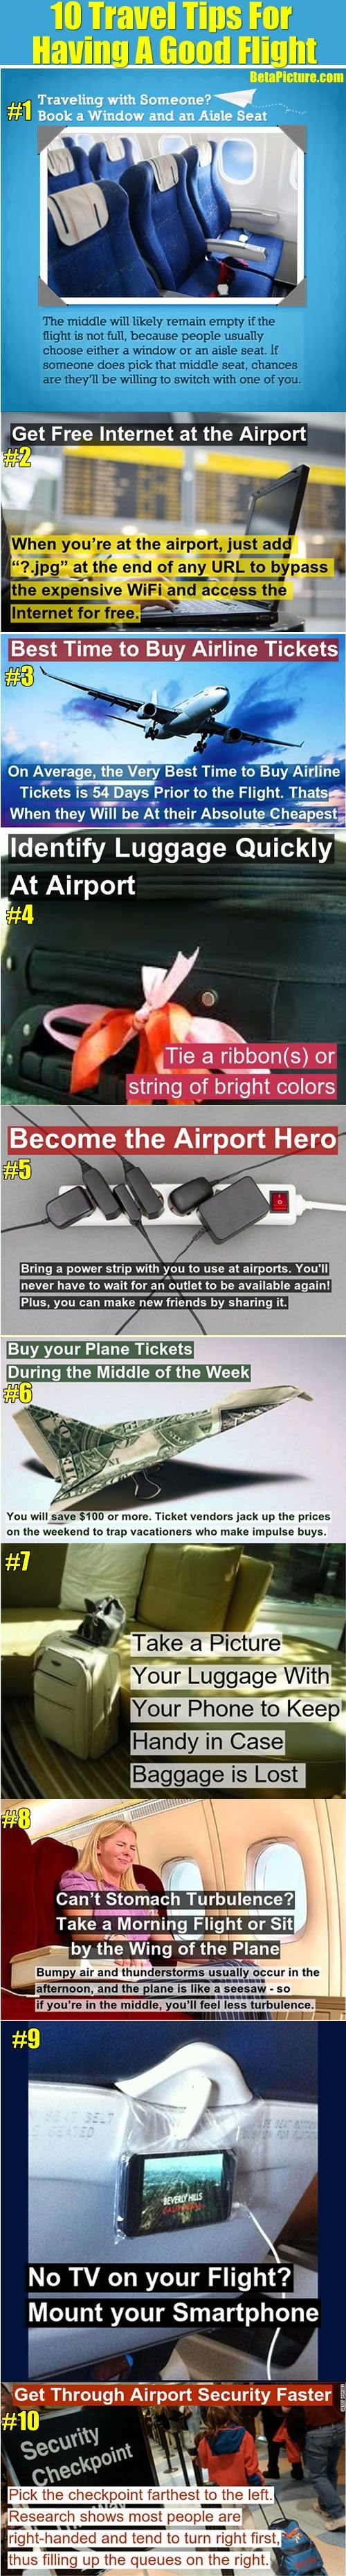 10 Travel Tips That You Must Know To Have A Good Flight. Loving that power strip idea! Such a good idea!: